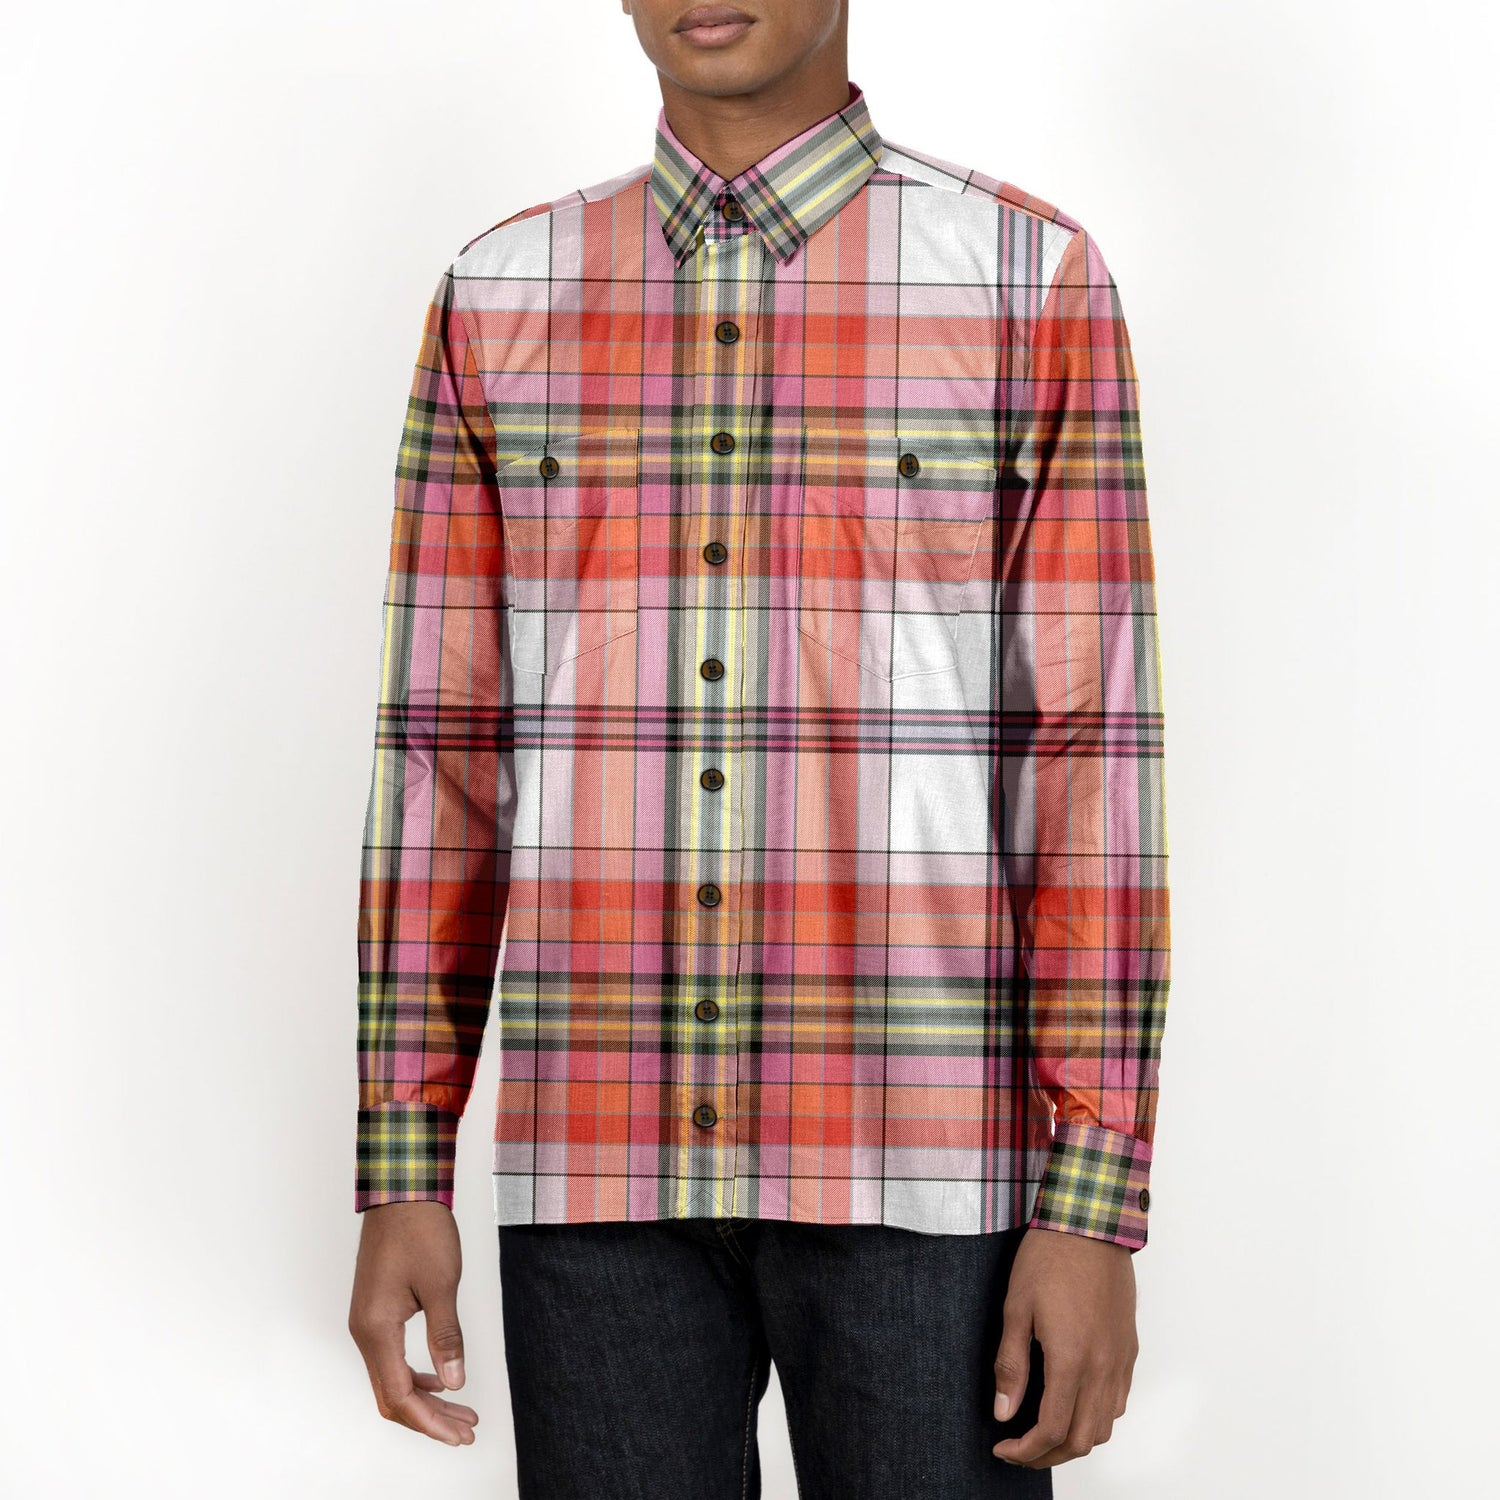 The Loaded Flannel